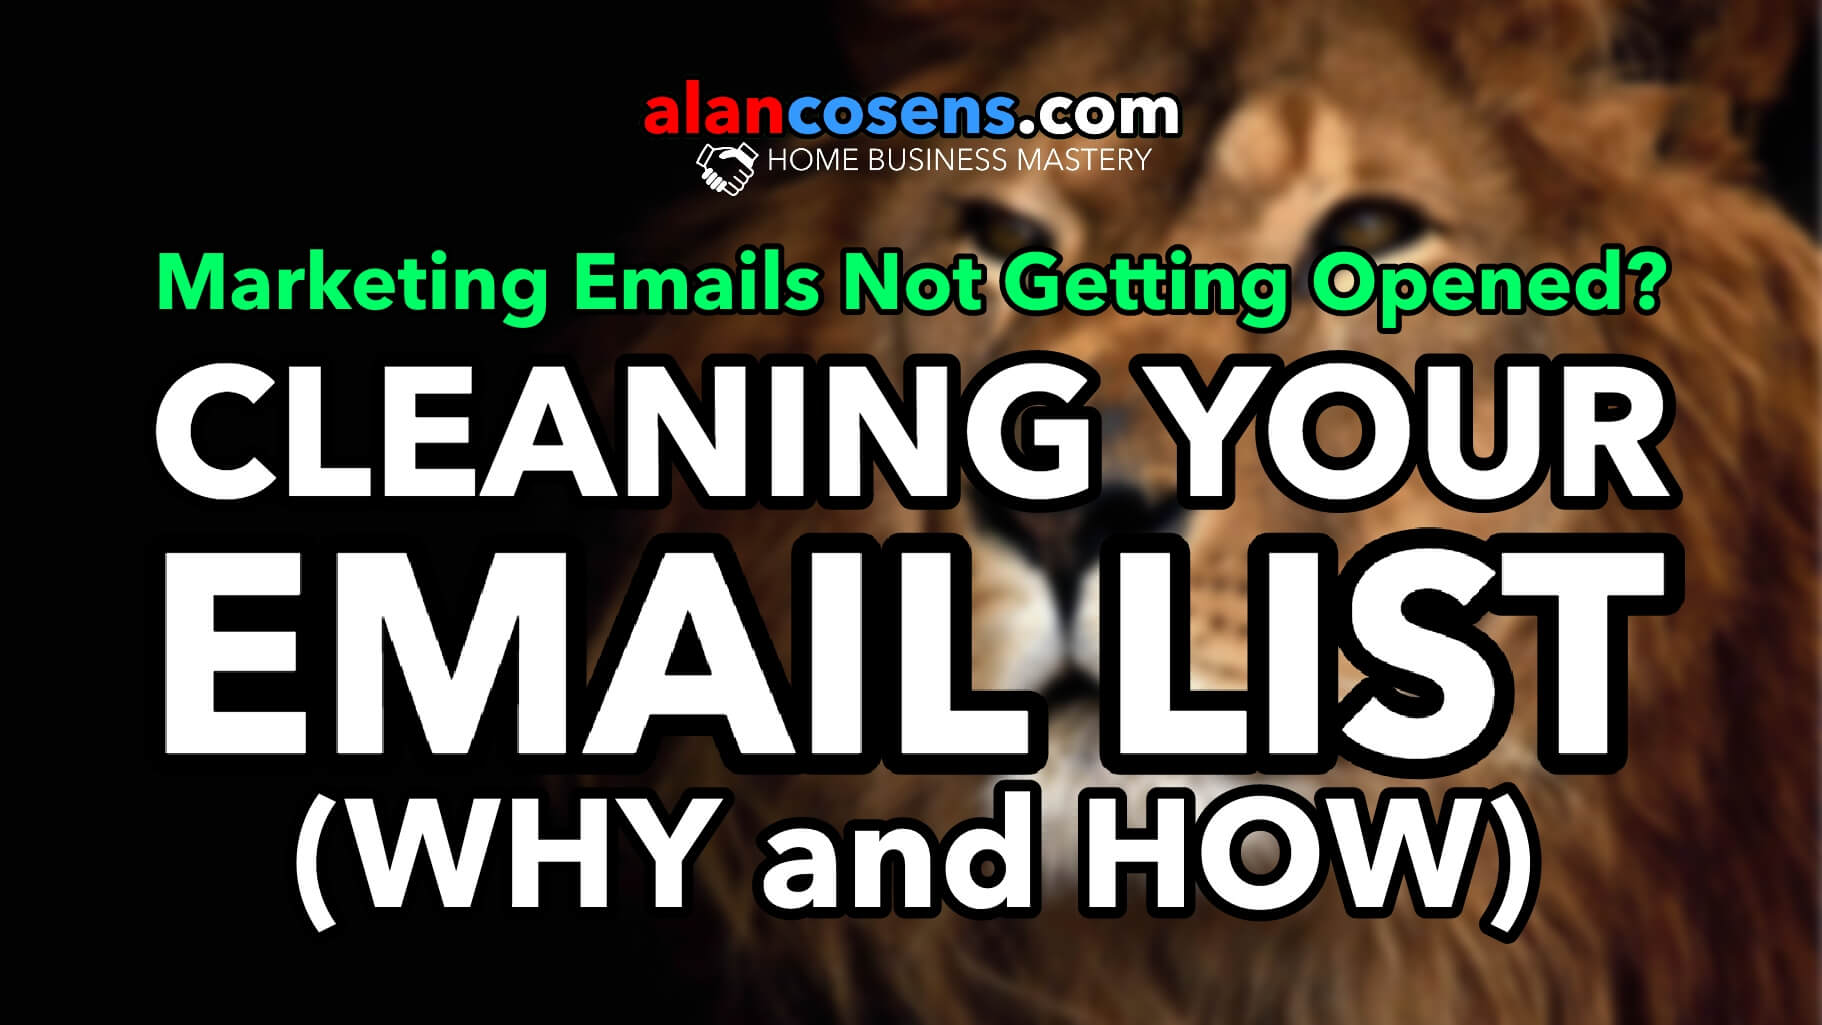 Marketing Emails Not Getting Opened?